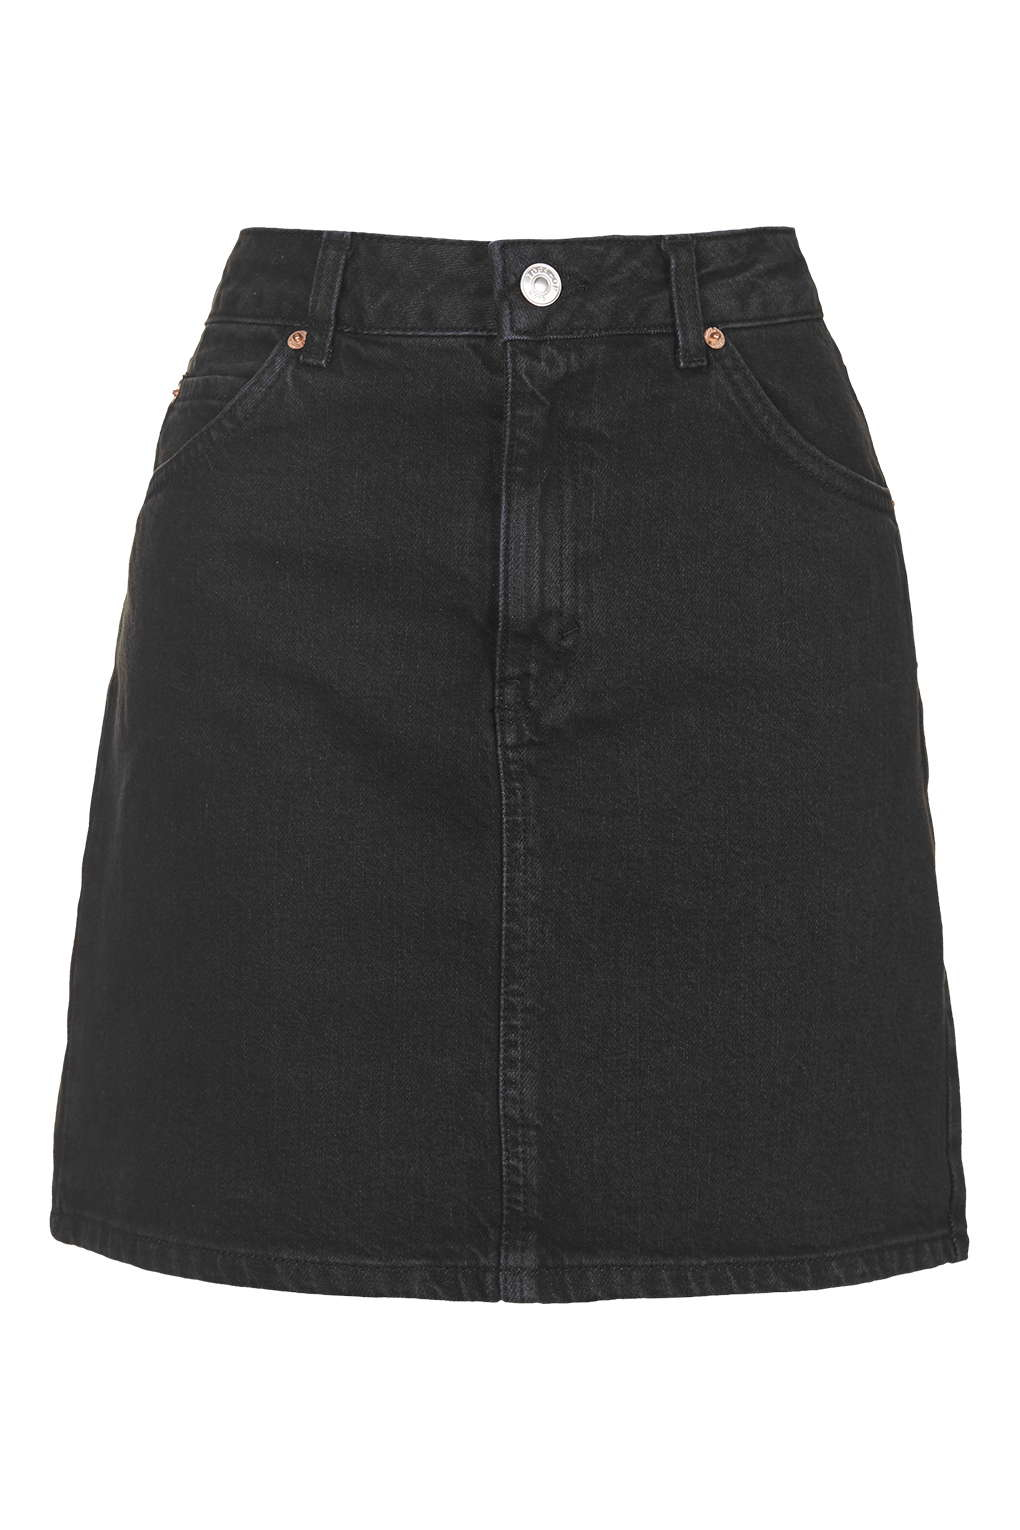 Topshop Petite Moto High Waist Denim Skirt in Black | Lyst